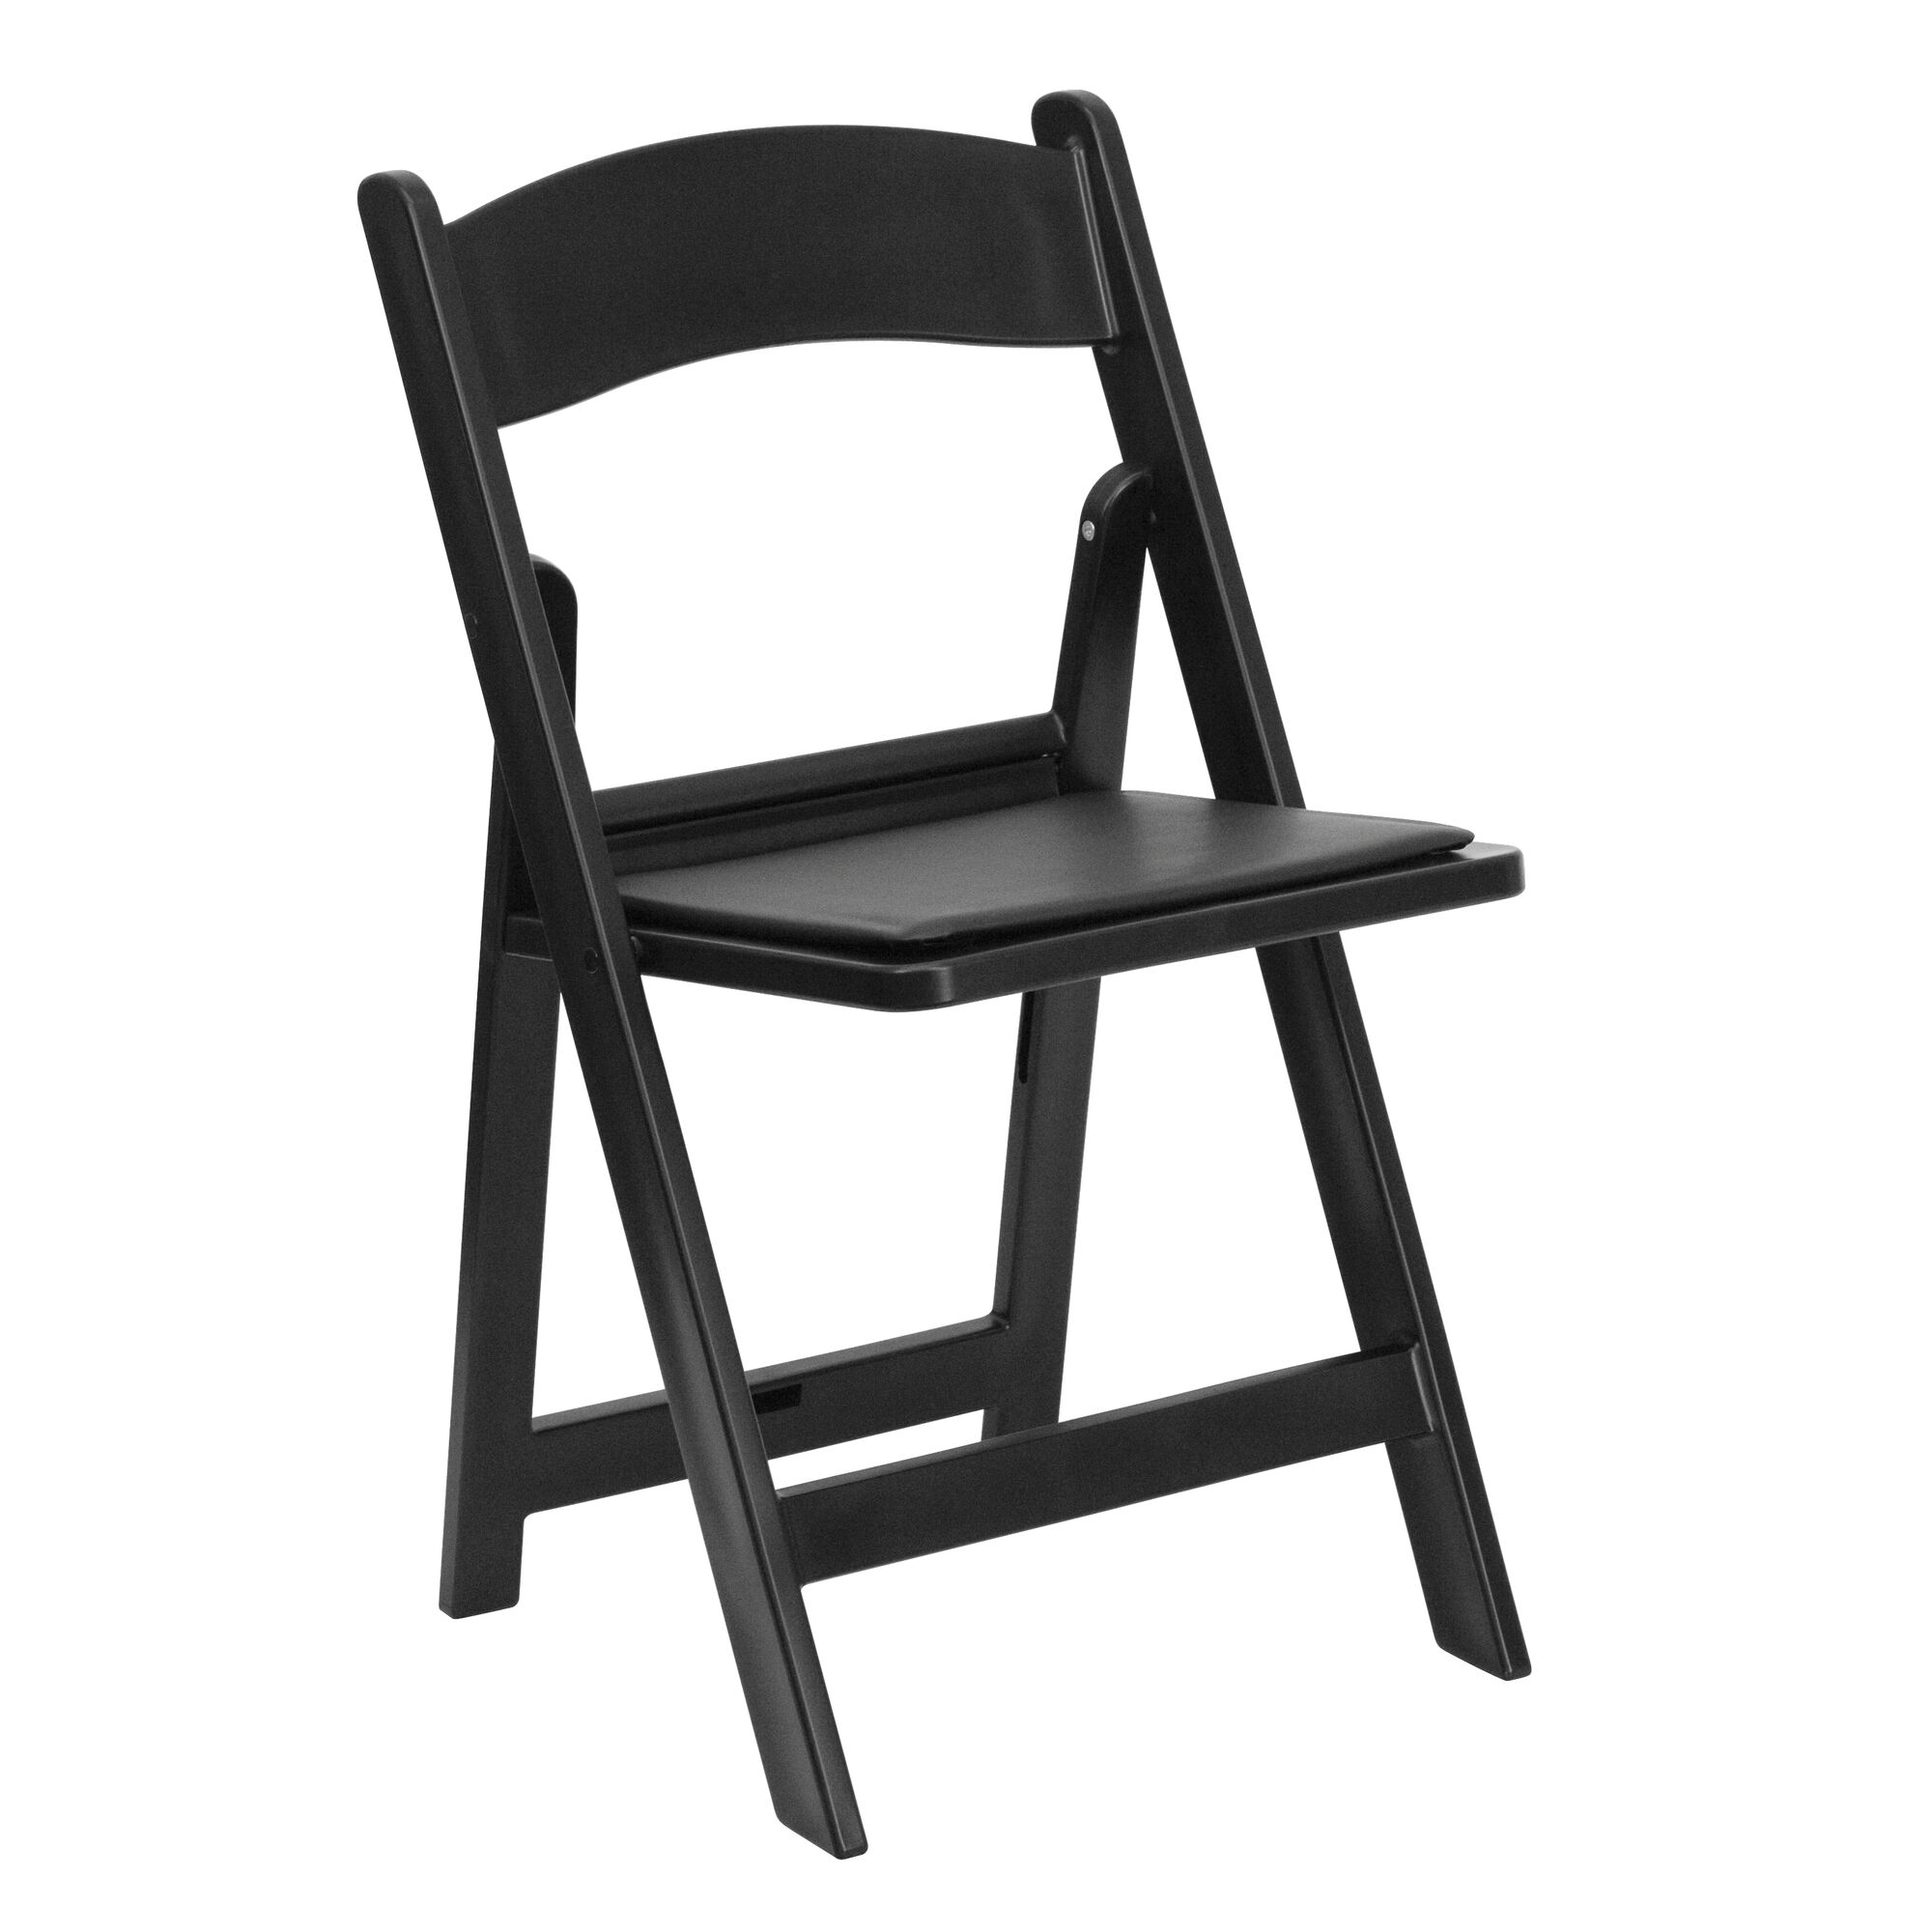 Terrific Hercules Series 1000 Lb Capacity Black Resin Folding Chair With Black Vinyl Padded Seat Squirreltailoven Fun Painted Chair Ideas Images Squirreltailovenorg